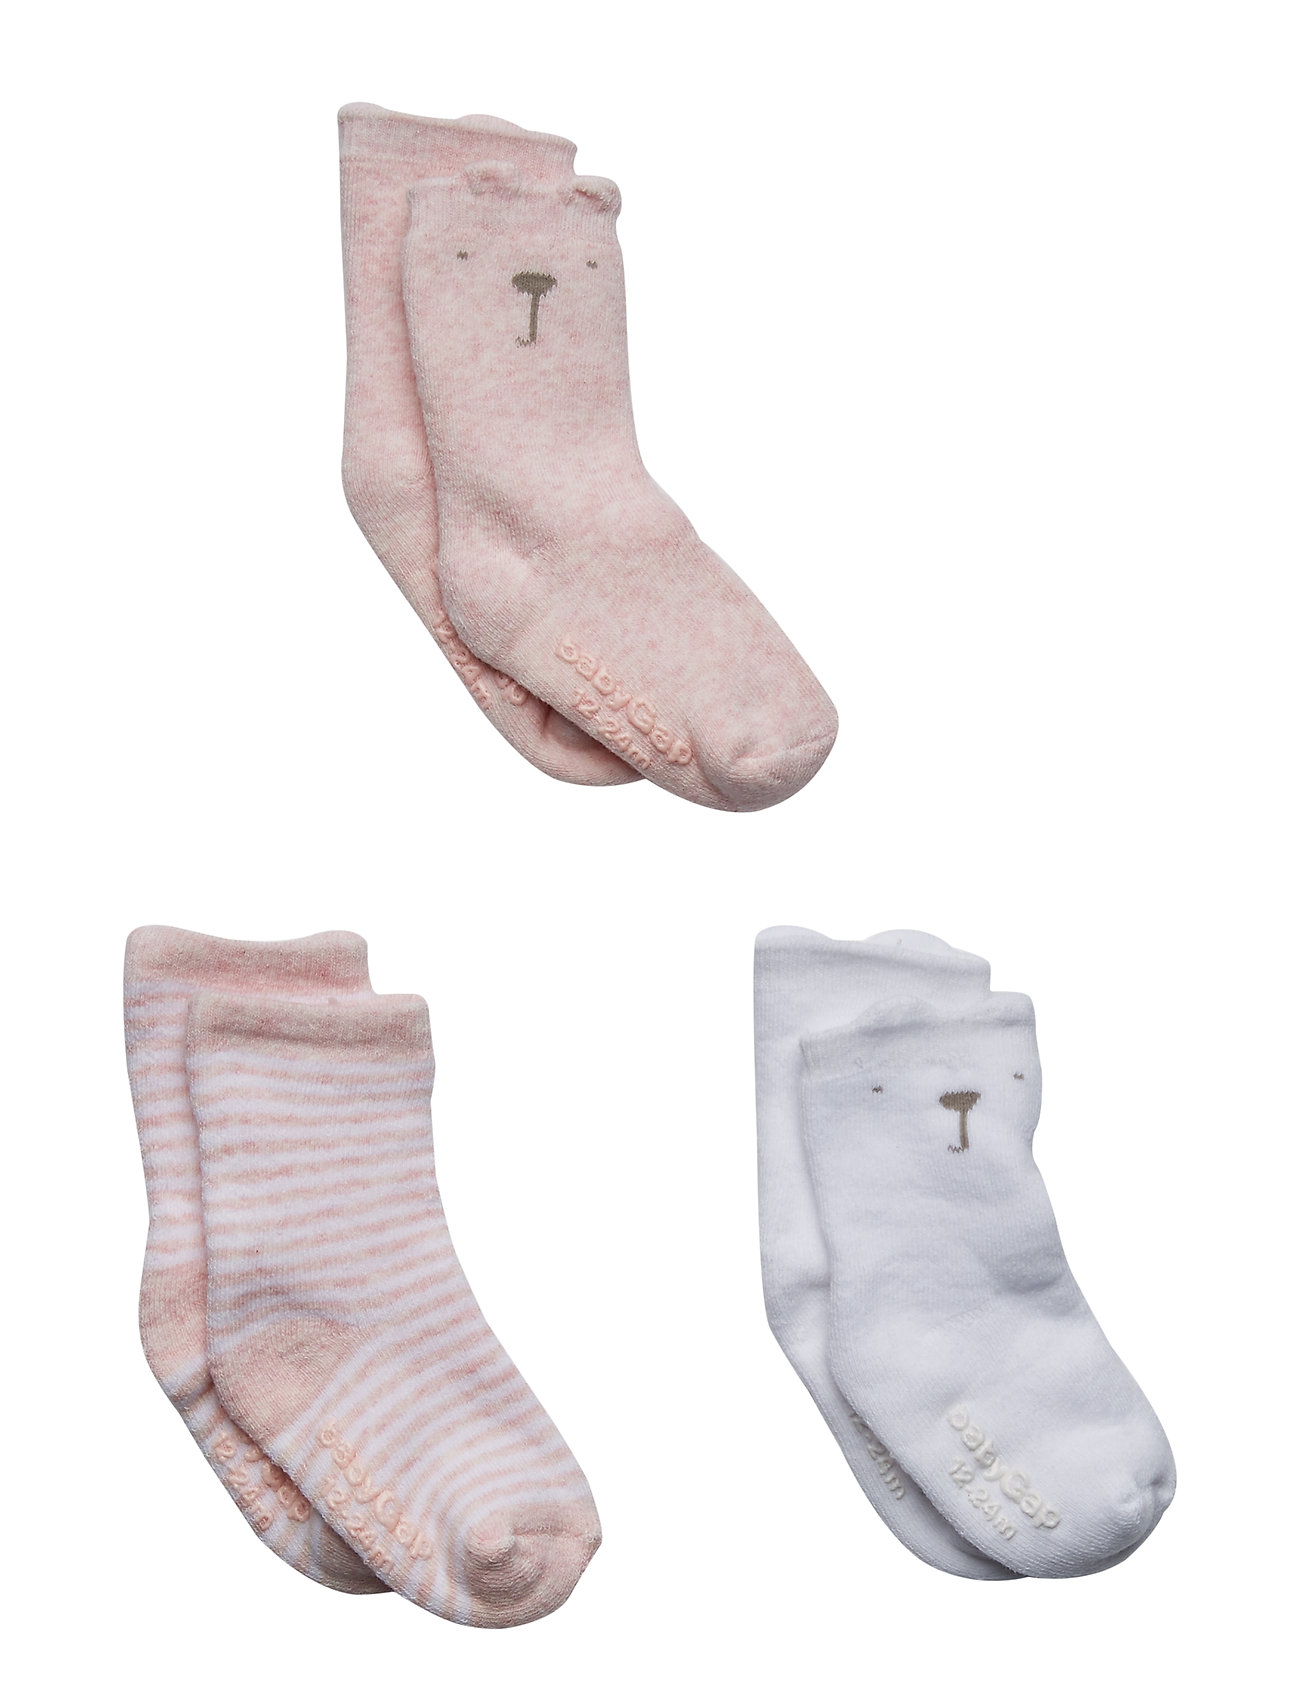 GAP Baby Brannan Bear Crew Socks (3-Pack) - PINK HEATHER B0459